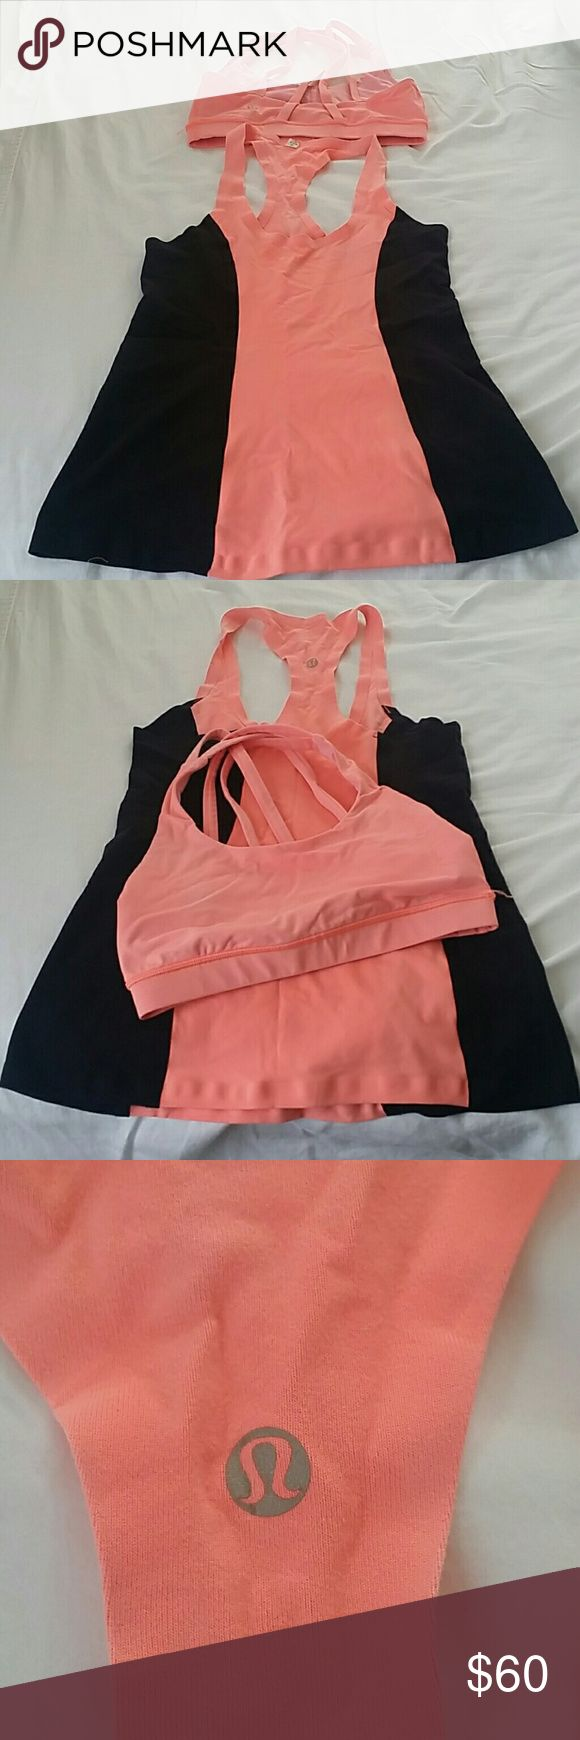 SALE - Lululemon work out top and sports bra Peach and black racer back top and matching sports bran with criss cross back top. The top is definitely a 6 but the bra is a 4. Both in very good condition, always washed in cold water with other LuLu items and air dried. No pilling on fabric or pulls. And no under arm staining. lululemon athletica Other